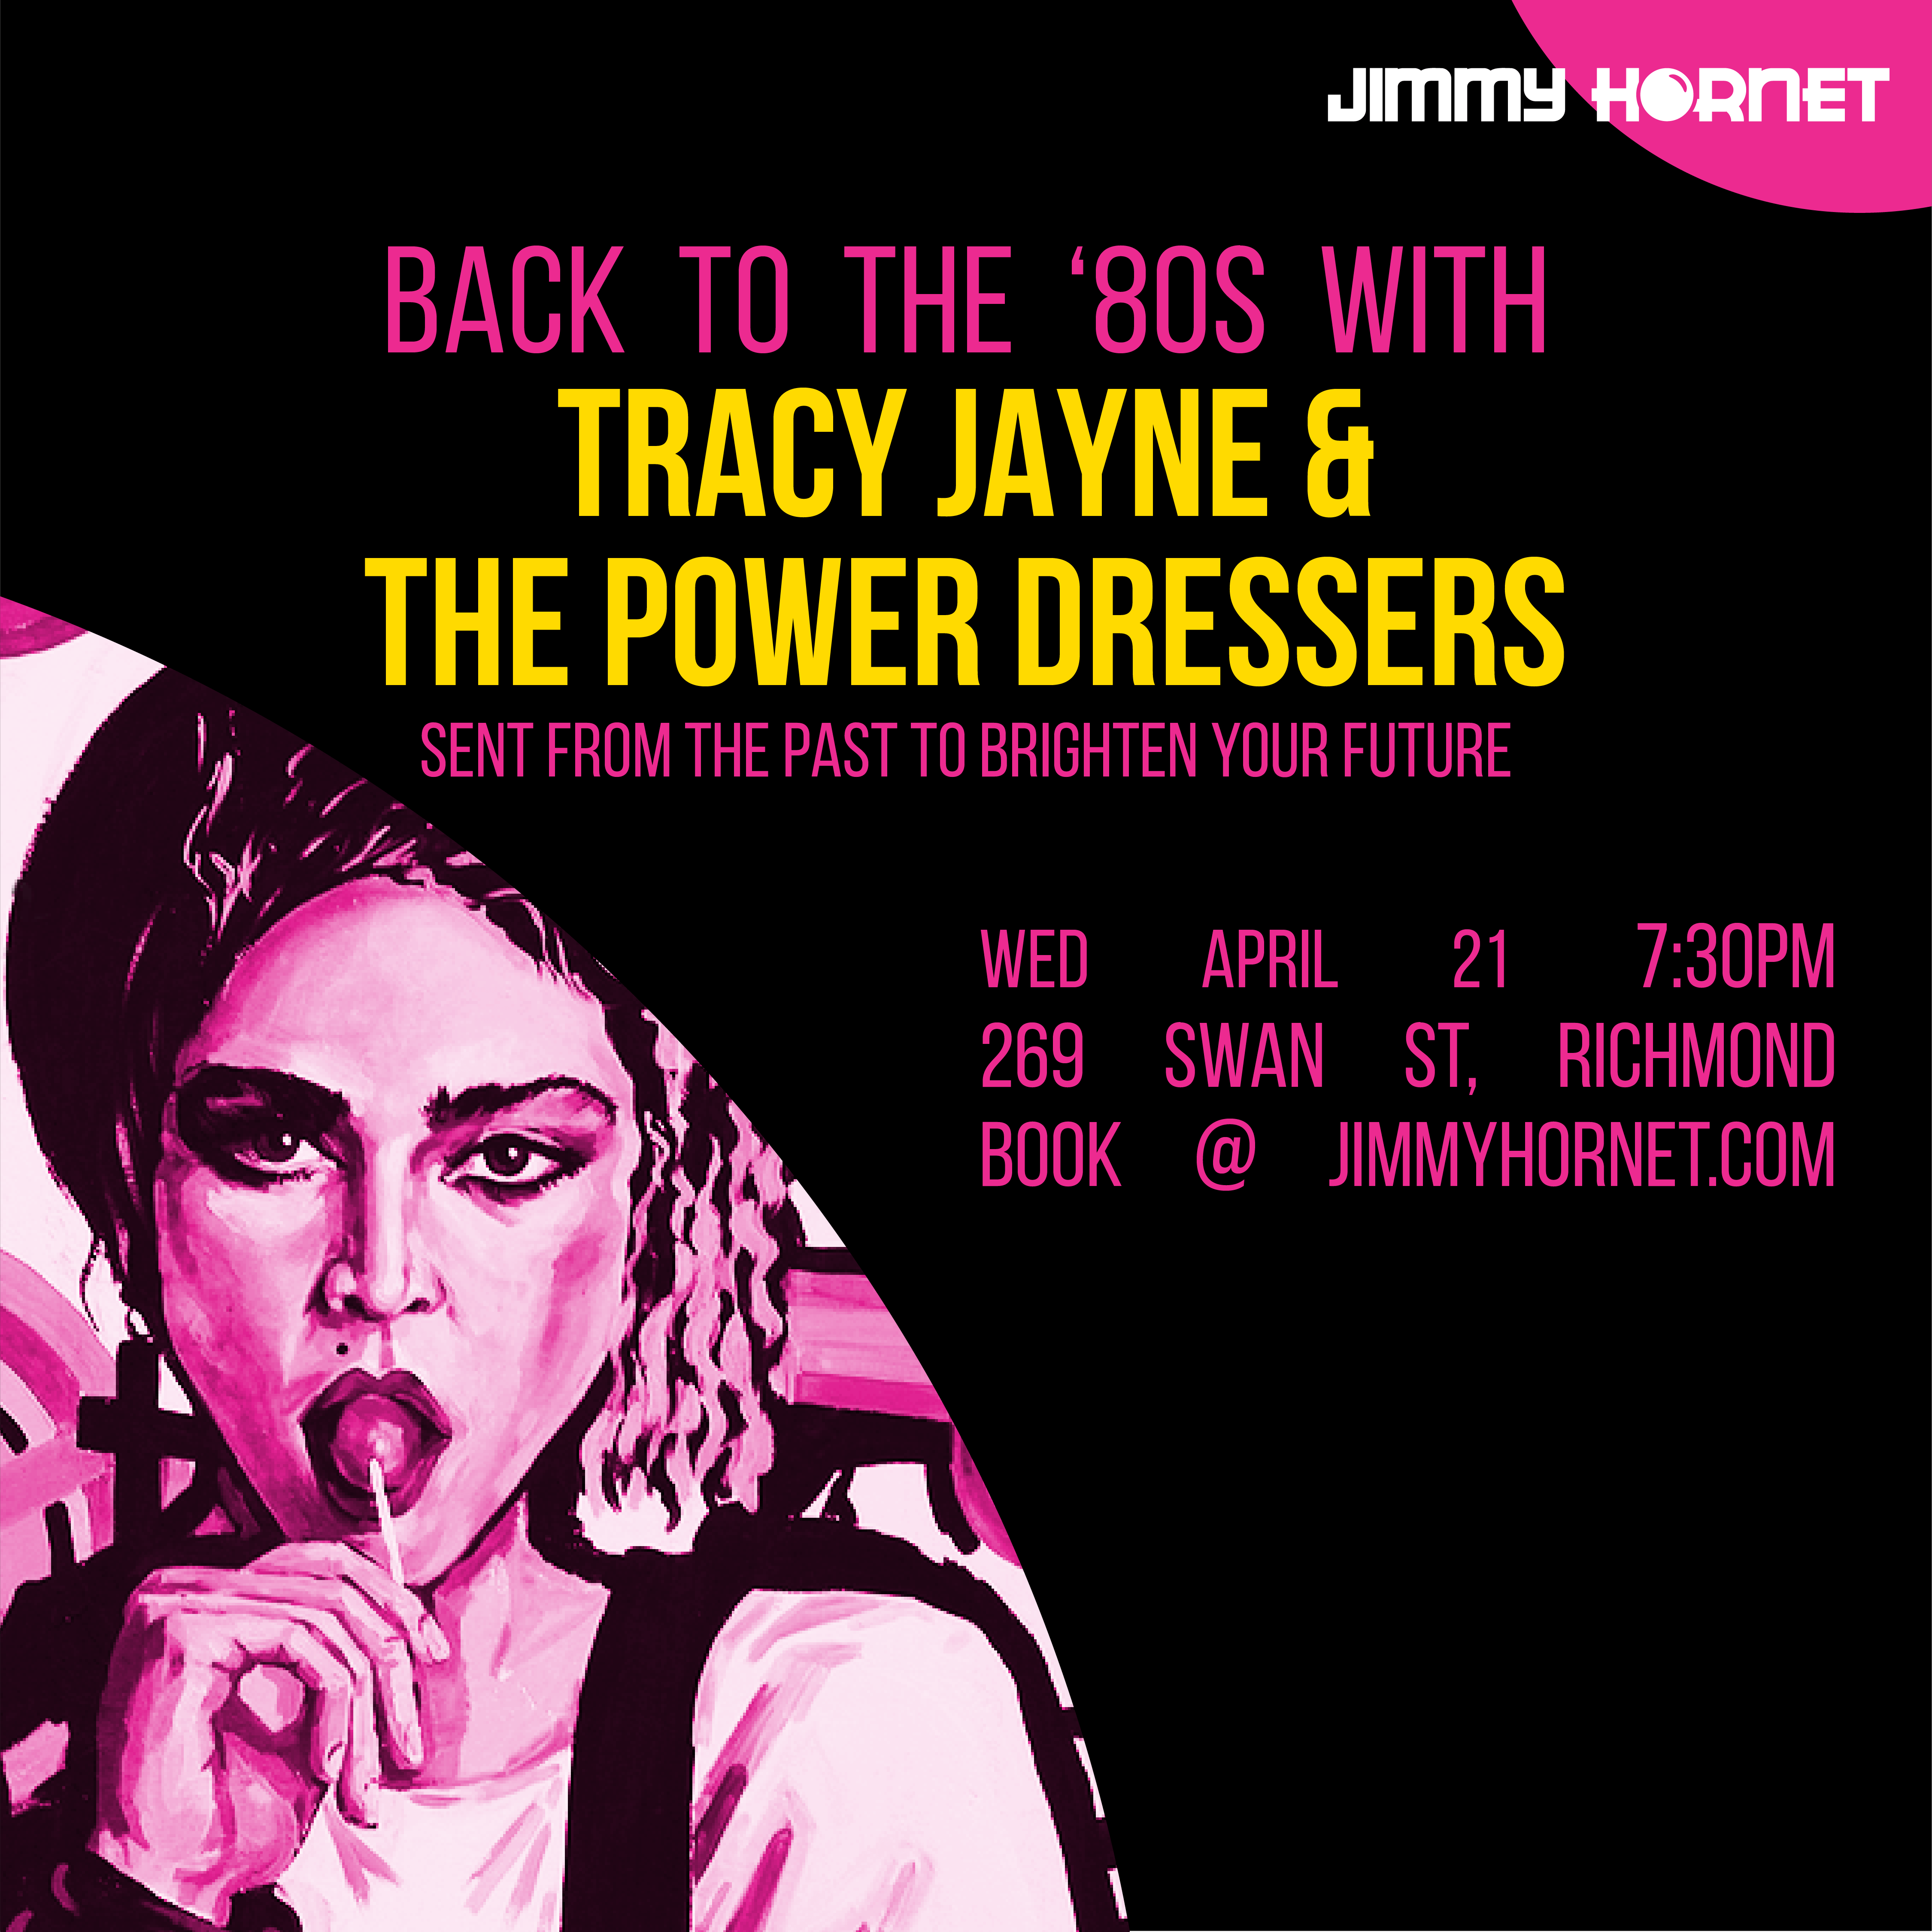 Tracy Jayne and the Powerdressers